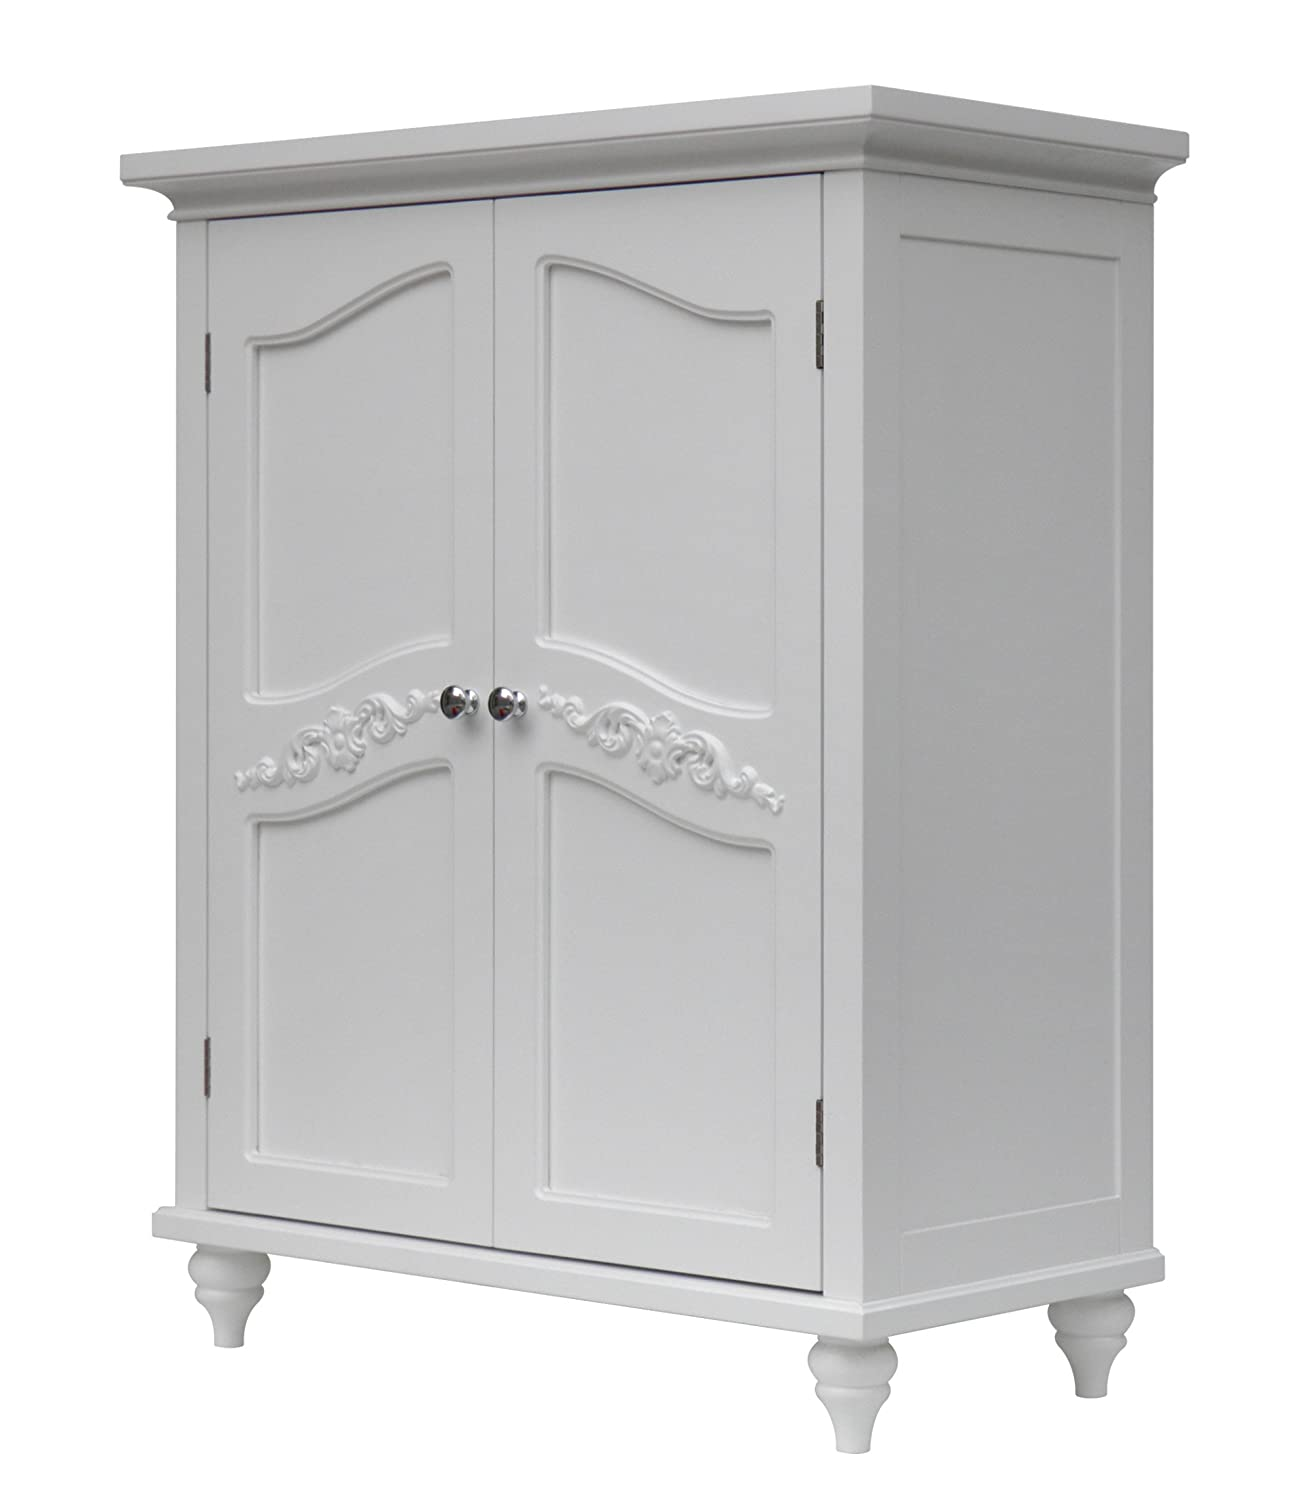 standing item drawer bathroom free wooden storage afae drawers specifics white cupboard large with itm unit cabinet